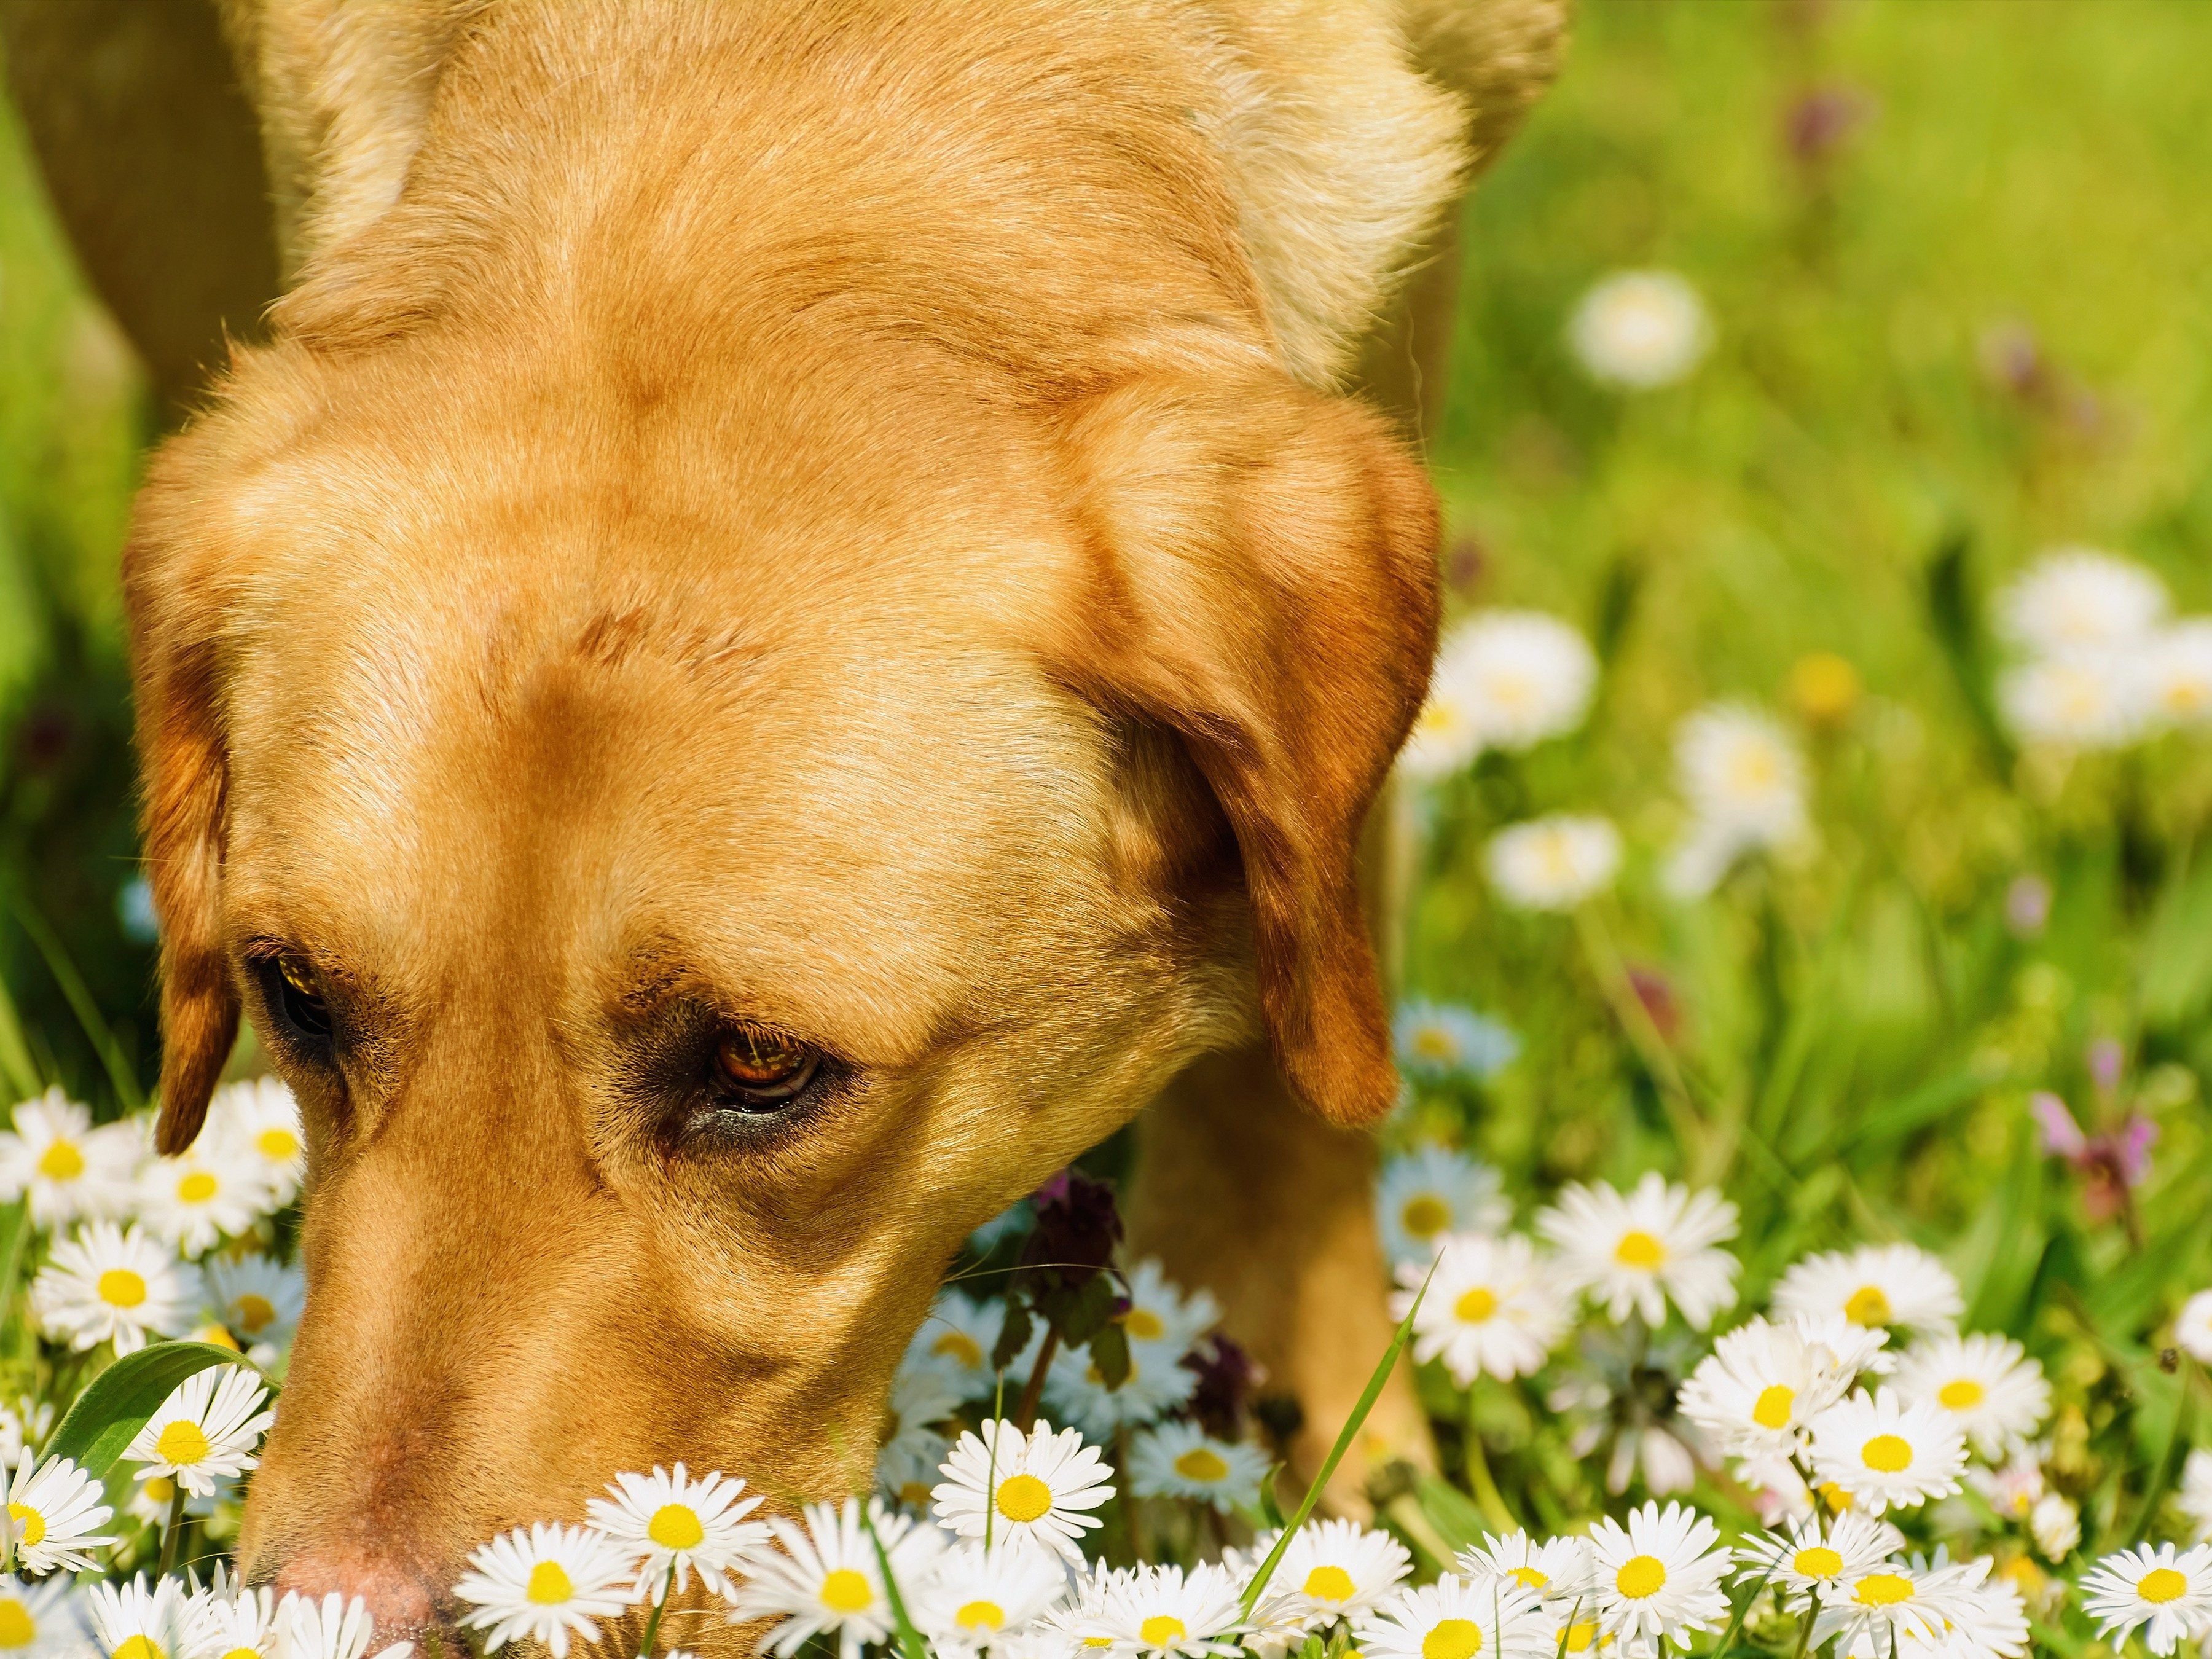 6. Take Your Dog on Nose-Friendly Walks